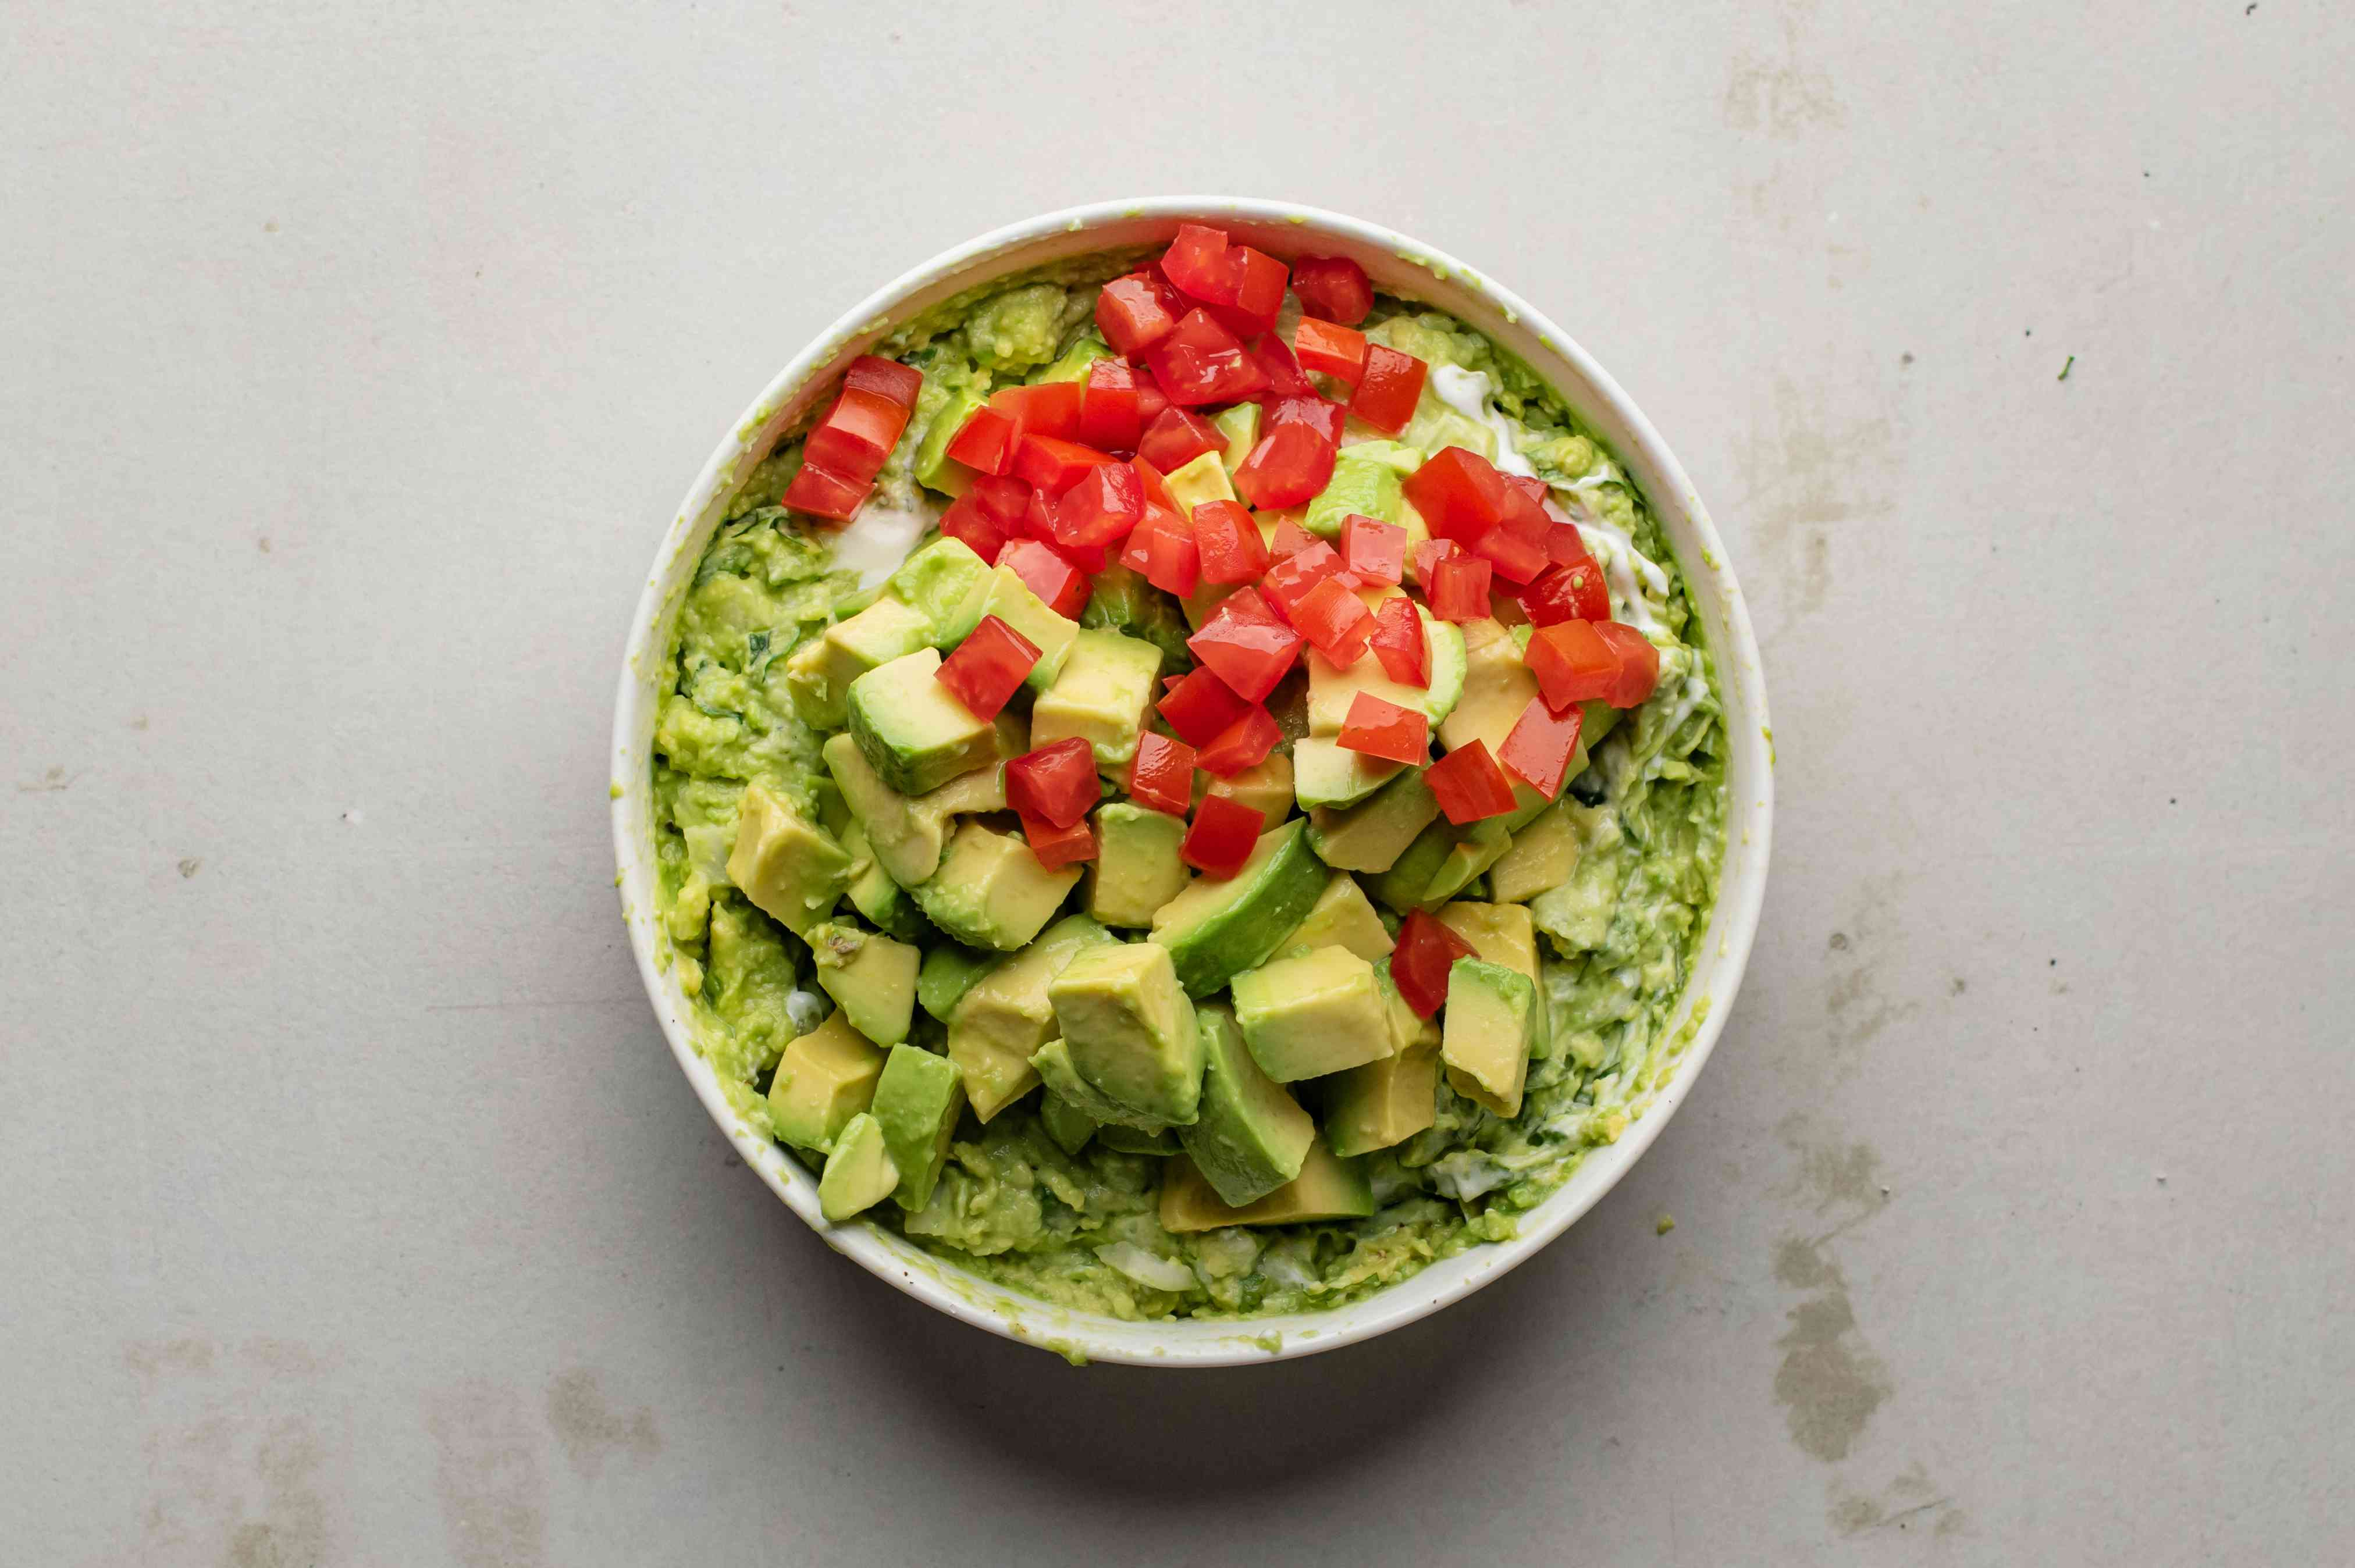 Tomato and diced avocado added to guacamole